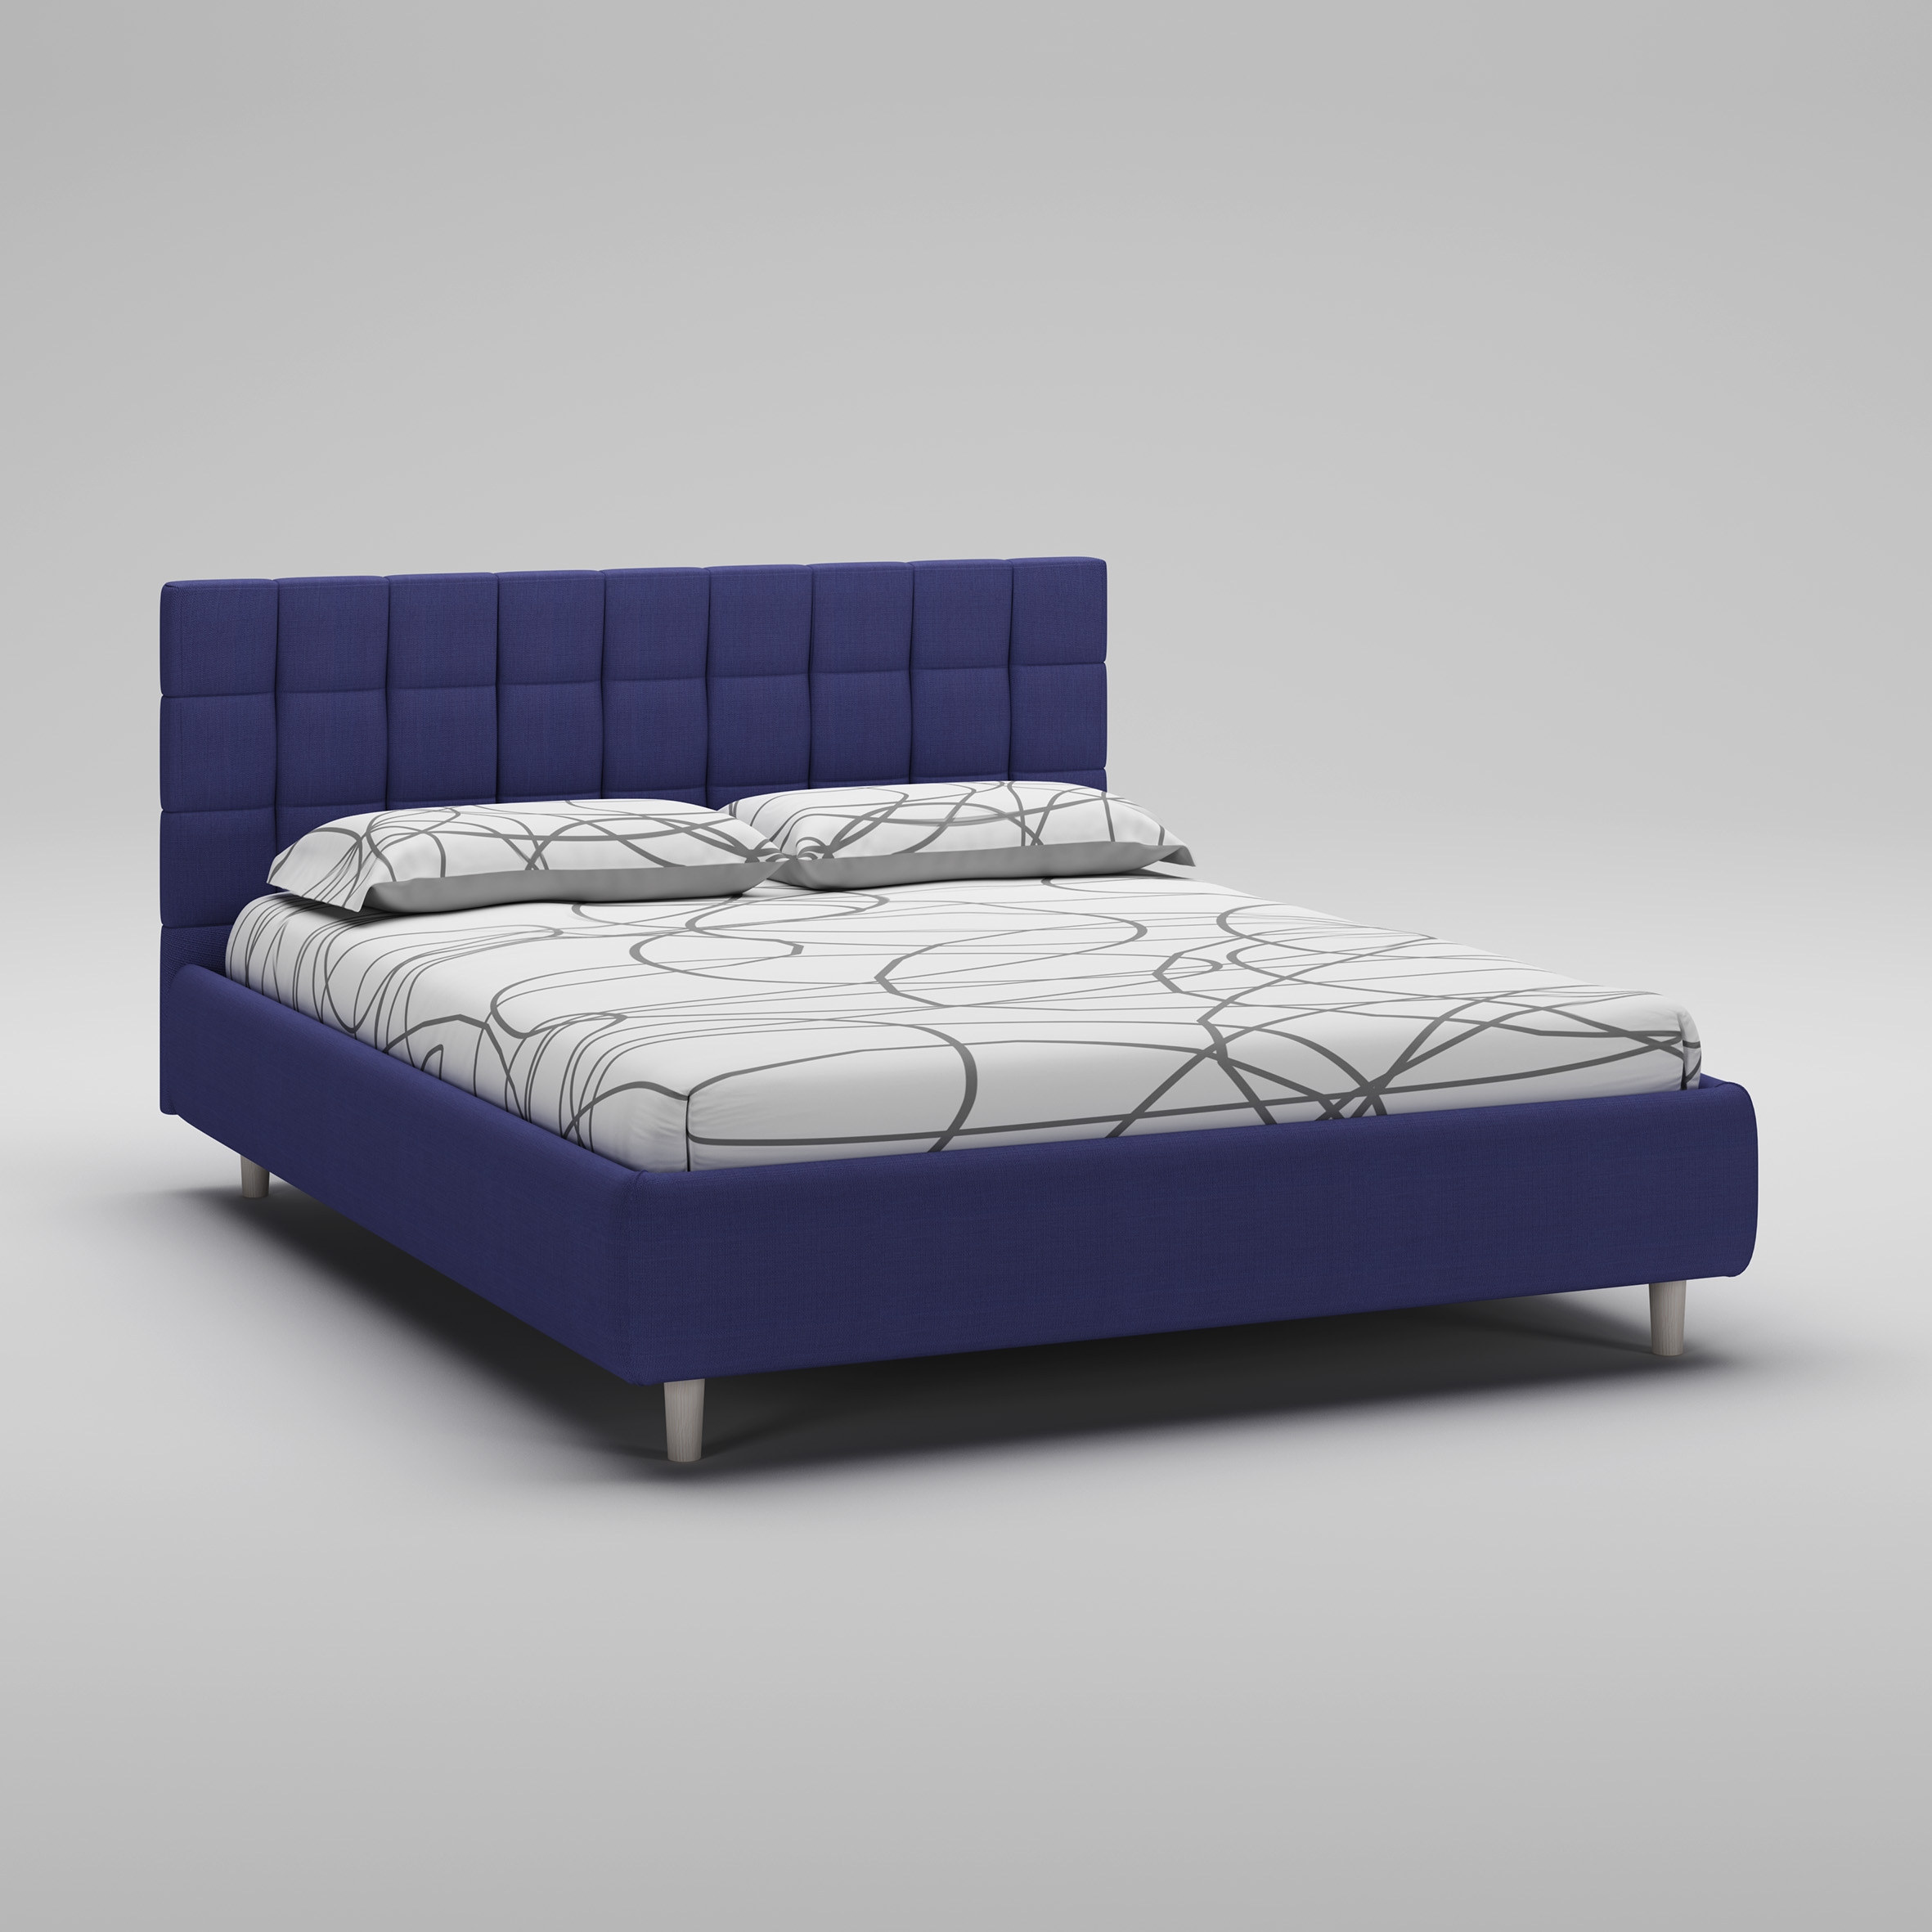 lit 160x200 avec cadre t te de lit bleu moretti. Black Bedroom Furniture Sets. Home Design Ideas